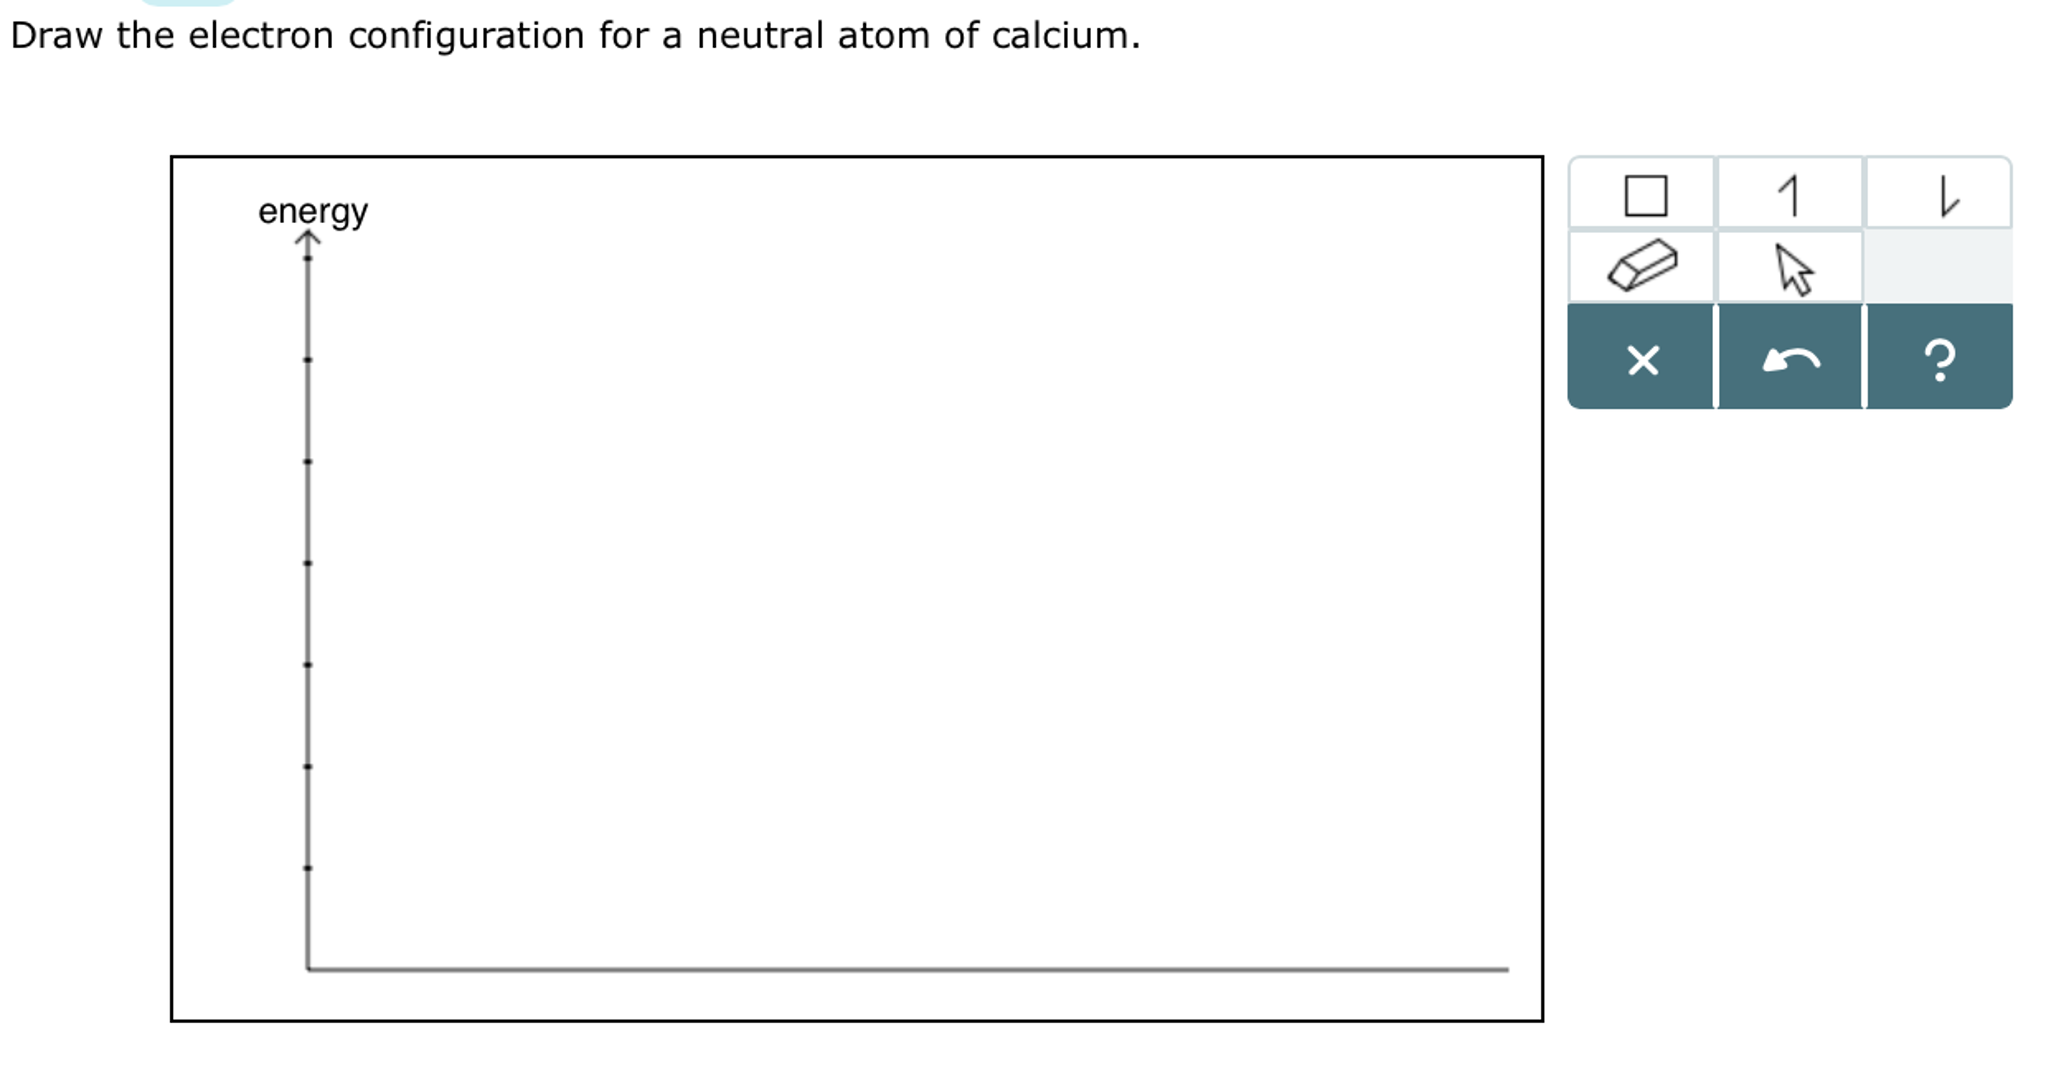 Solved draw the electron configuration for a neutral atom draw the electron configuration for a neutral atom of calcium energy enerav buycottarizona Choice Image